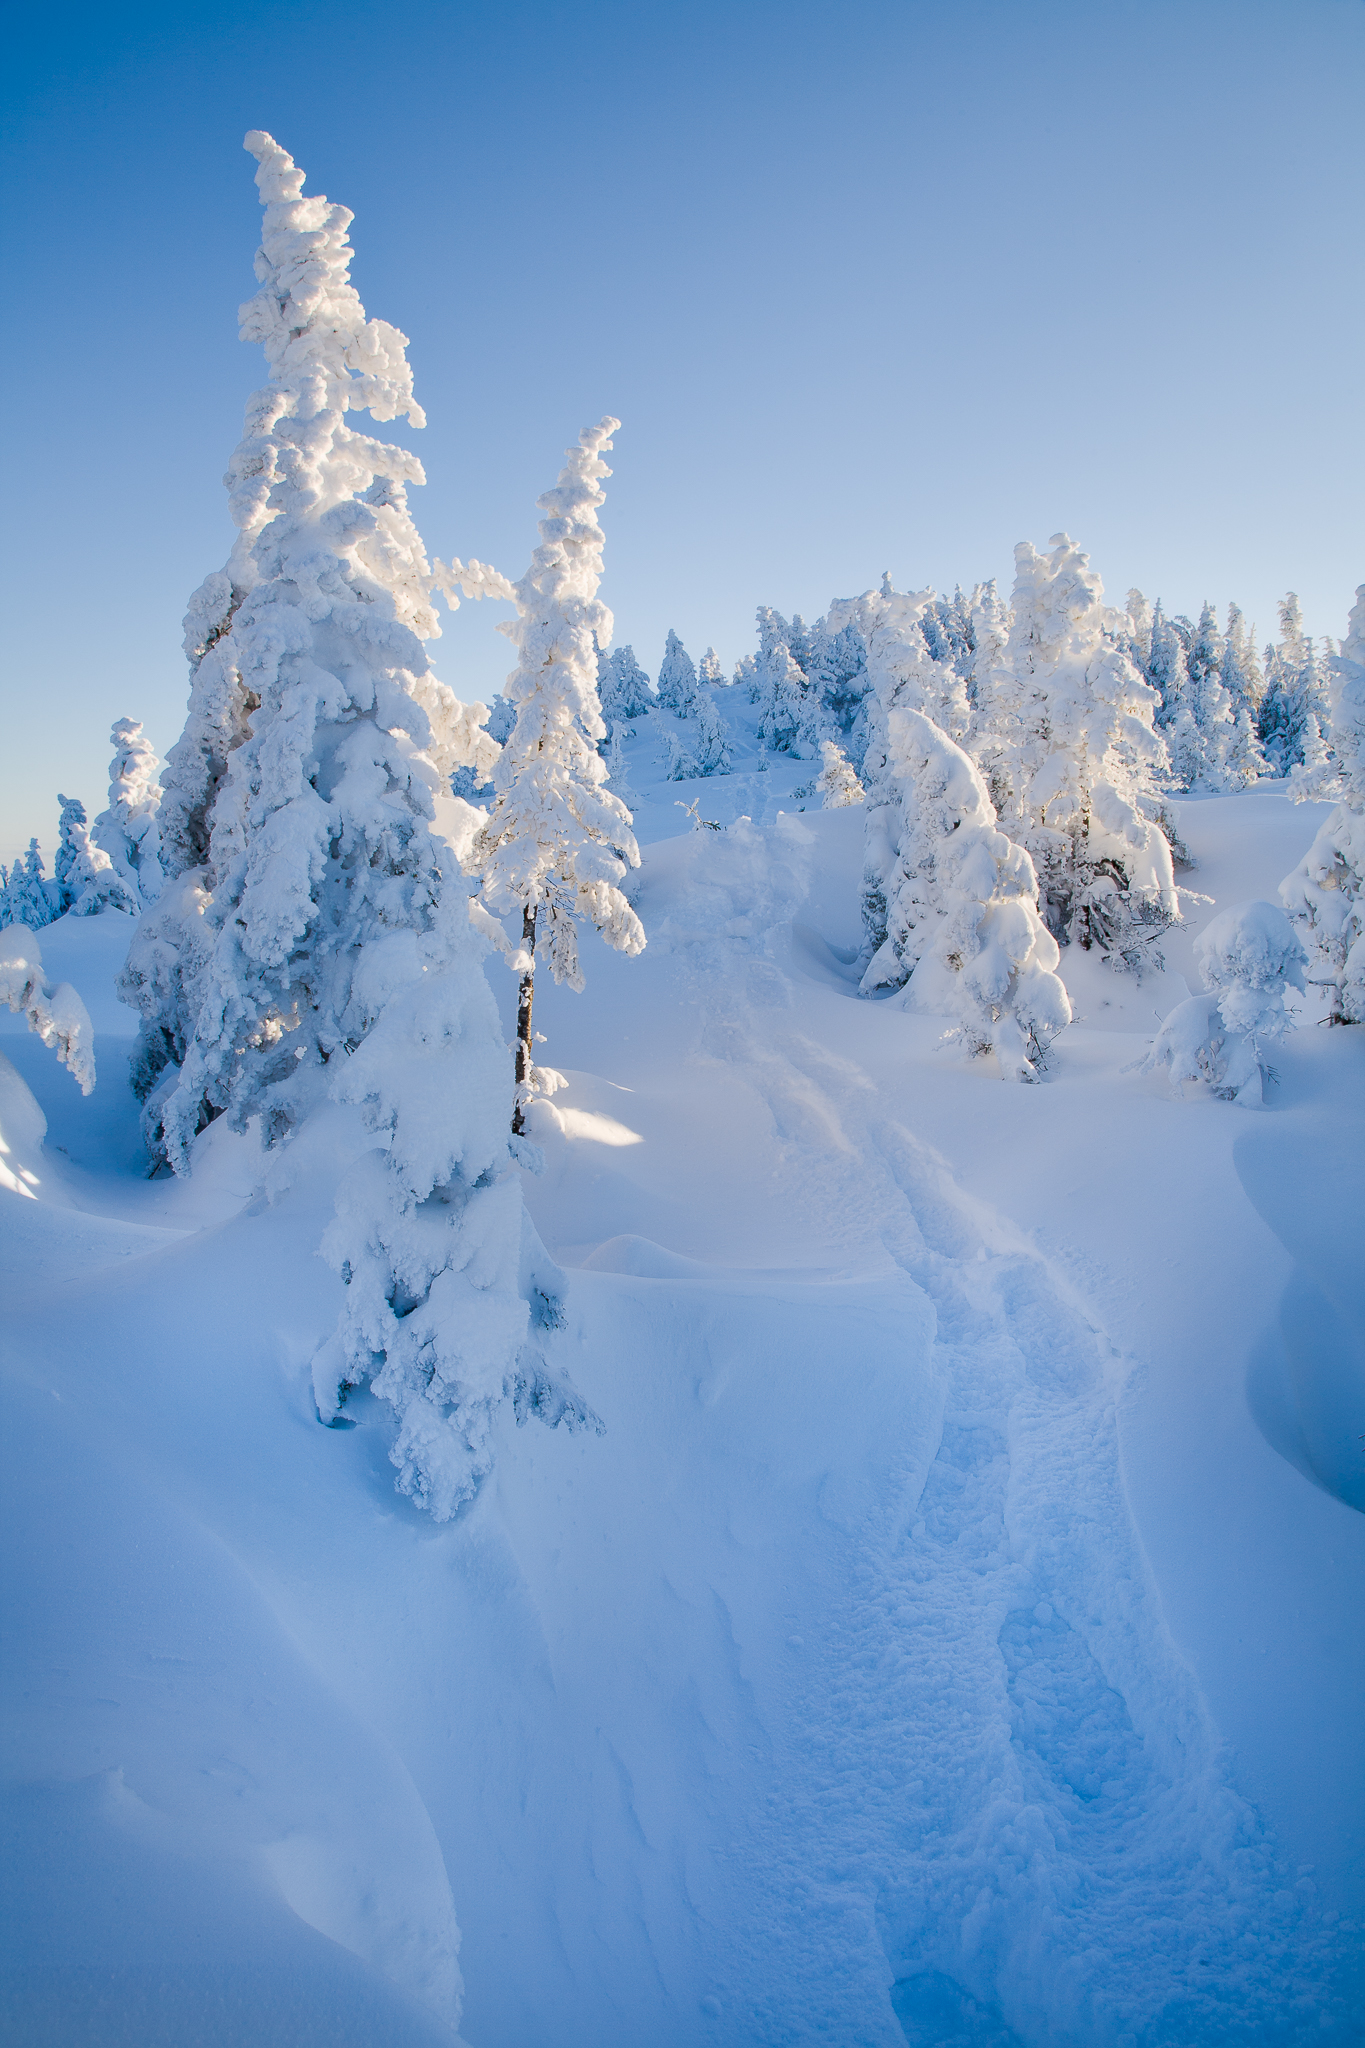 Winter Photography: Be Prepared, Be Successful